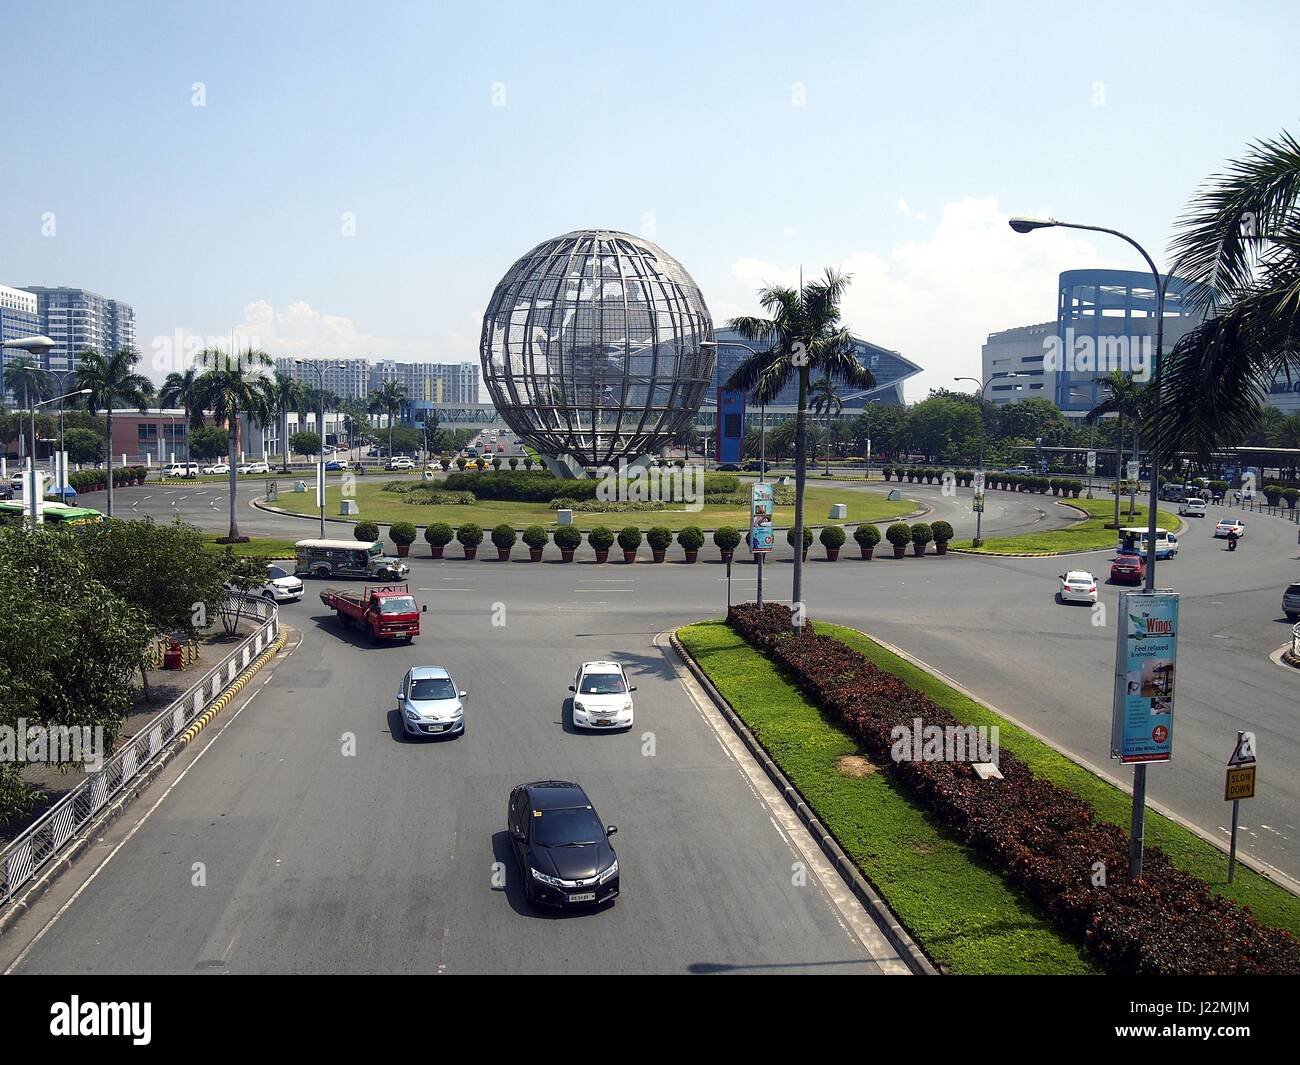 PASAY CITY, PHILIPPINES - APRIL 20, 2017: The SM Mall Of Asia or SM MOA is considered to be the third largest mall - Stock Image